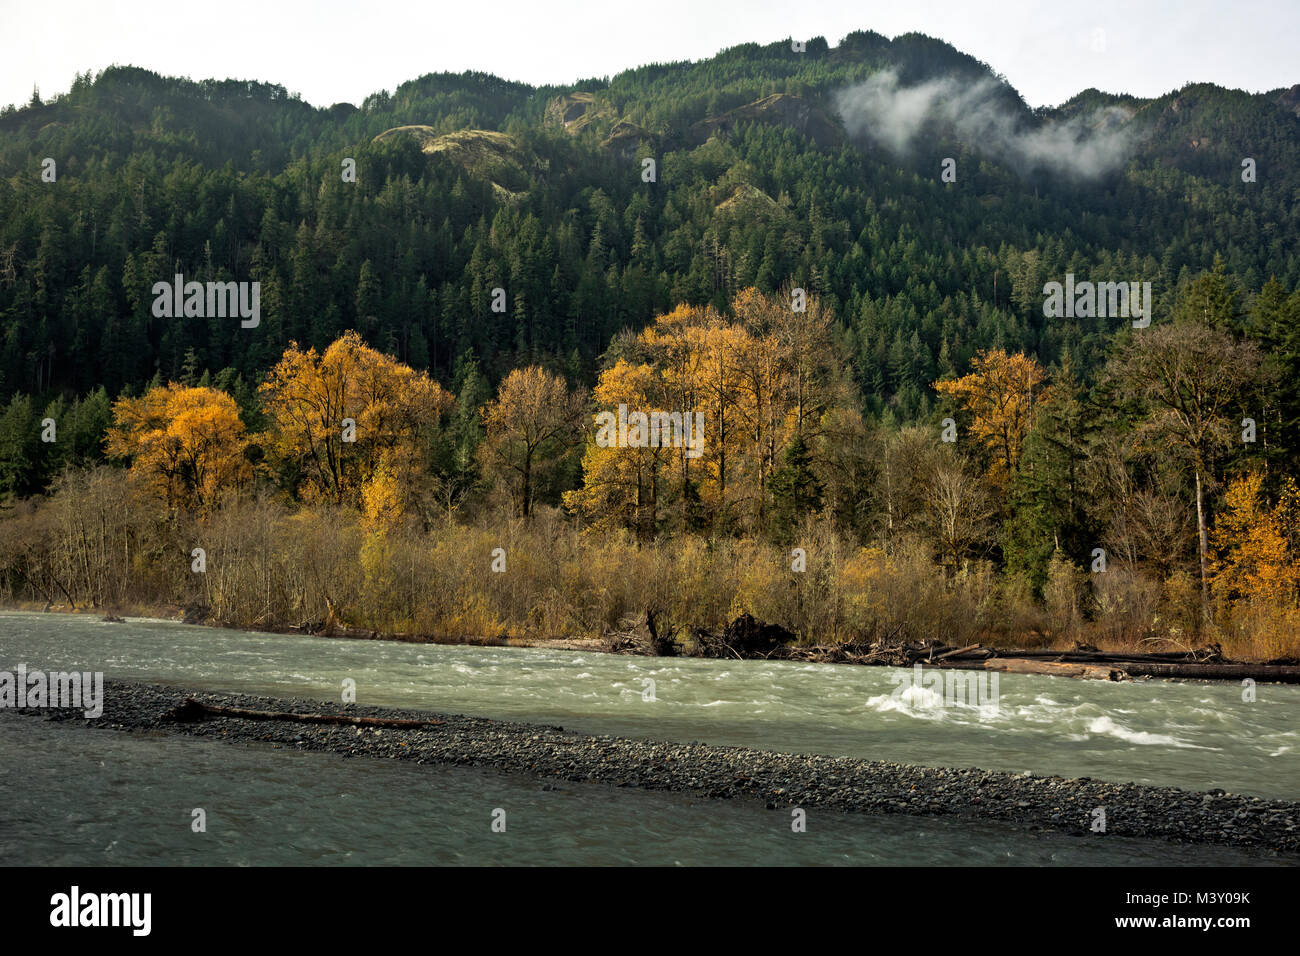 WA13370-00...WASHINGTON - Elwha River running wild and free, looking just like a river should. - Stock Image